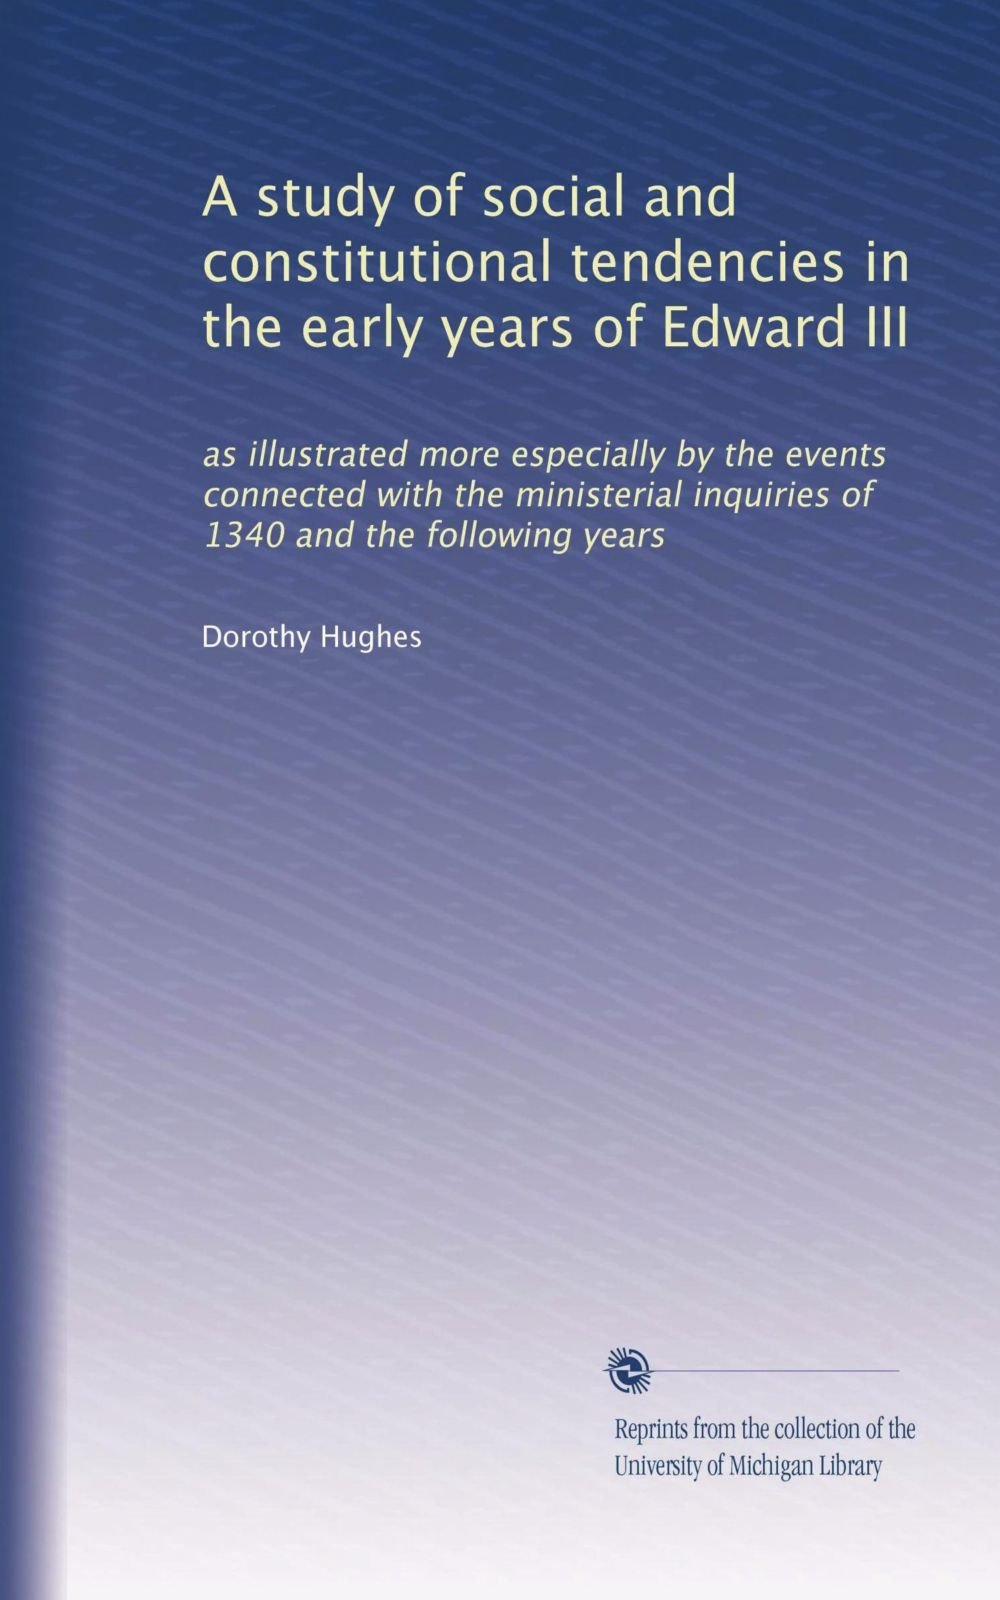 A study of social and constitutional tendencies in the early years of Edward III: as illustrated more especially by the events connected with the ministerial inquiries of 1340 and the following years pdf epub